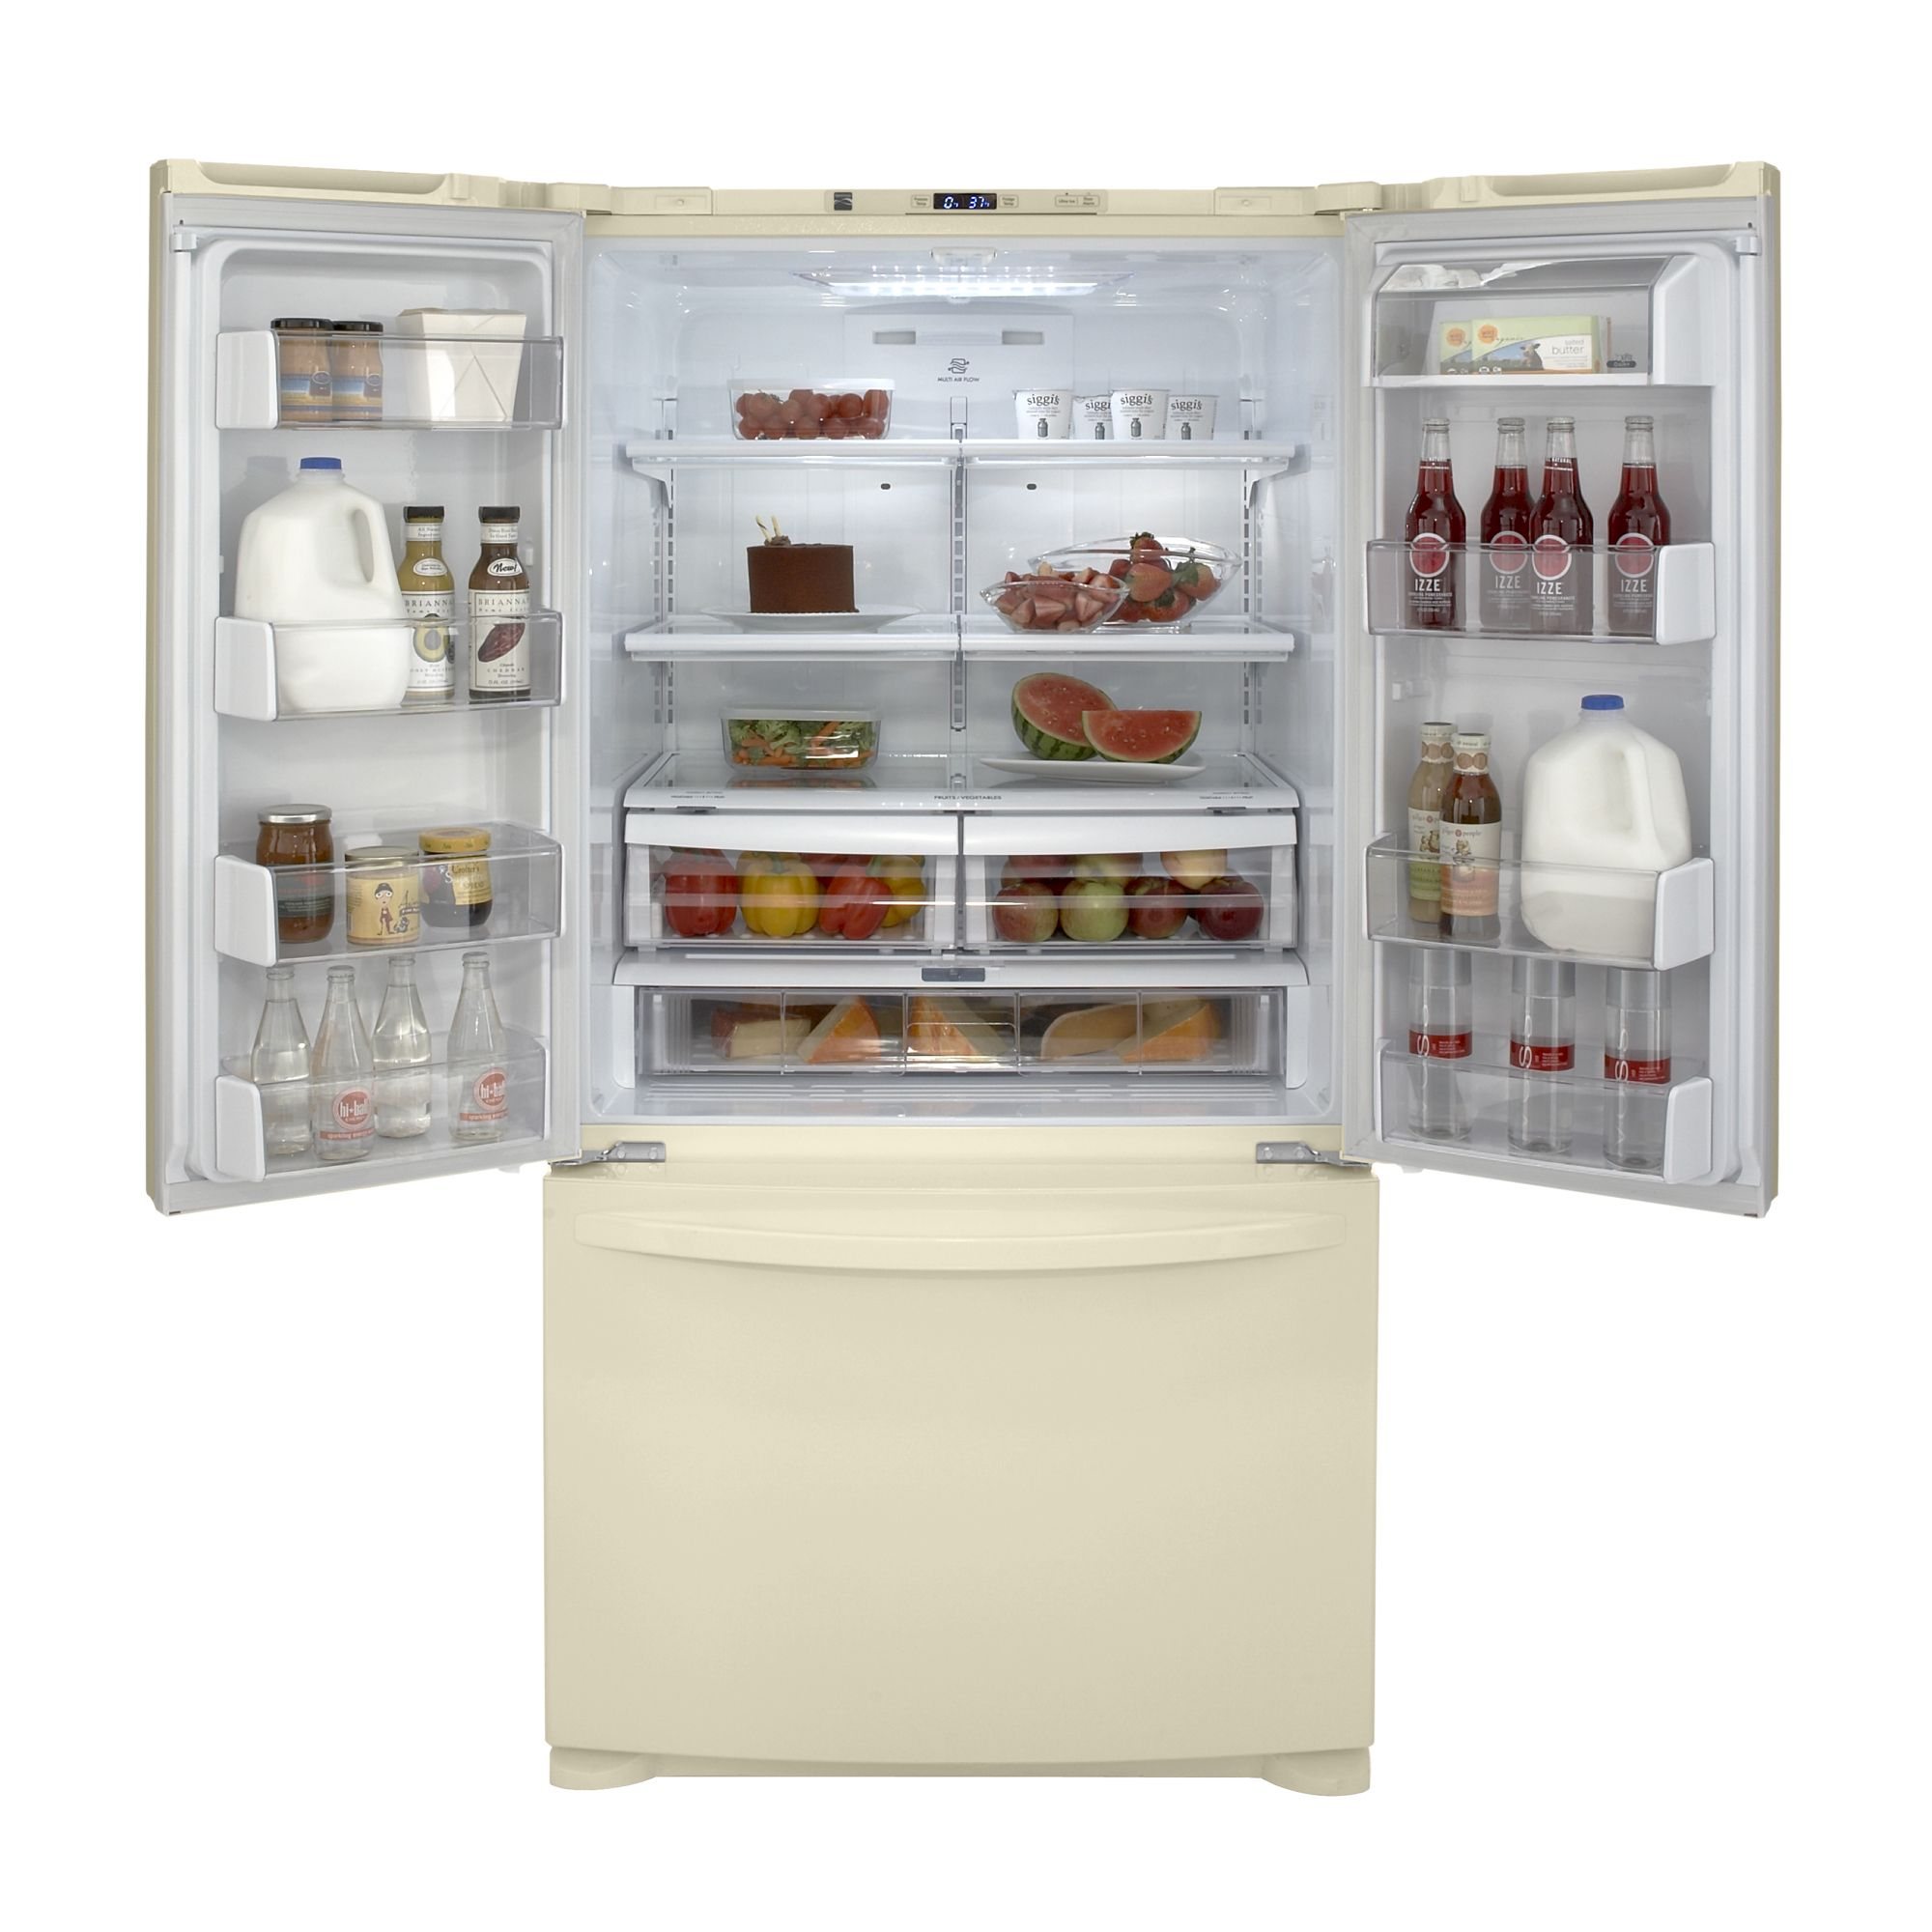 Kenmore 25.4 cu. ft. French Door Bottom-Freezer Refrigerator- Bisque